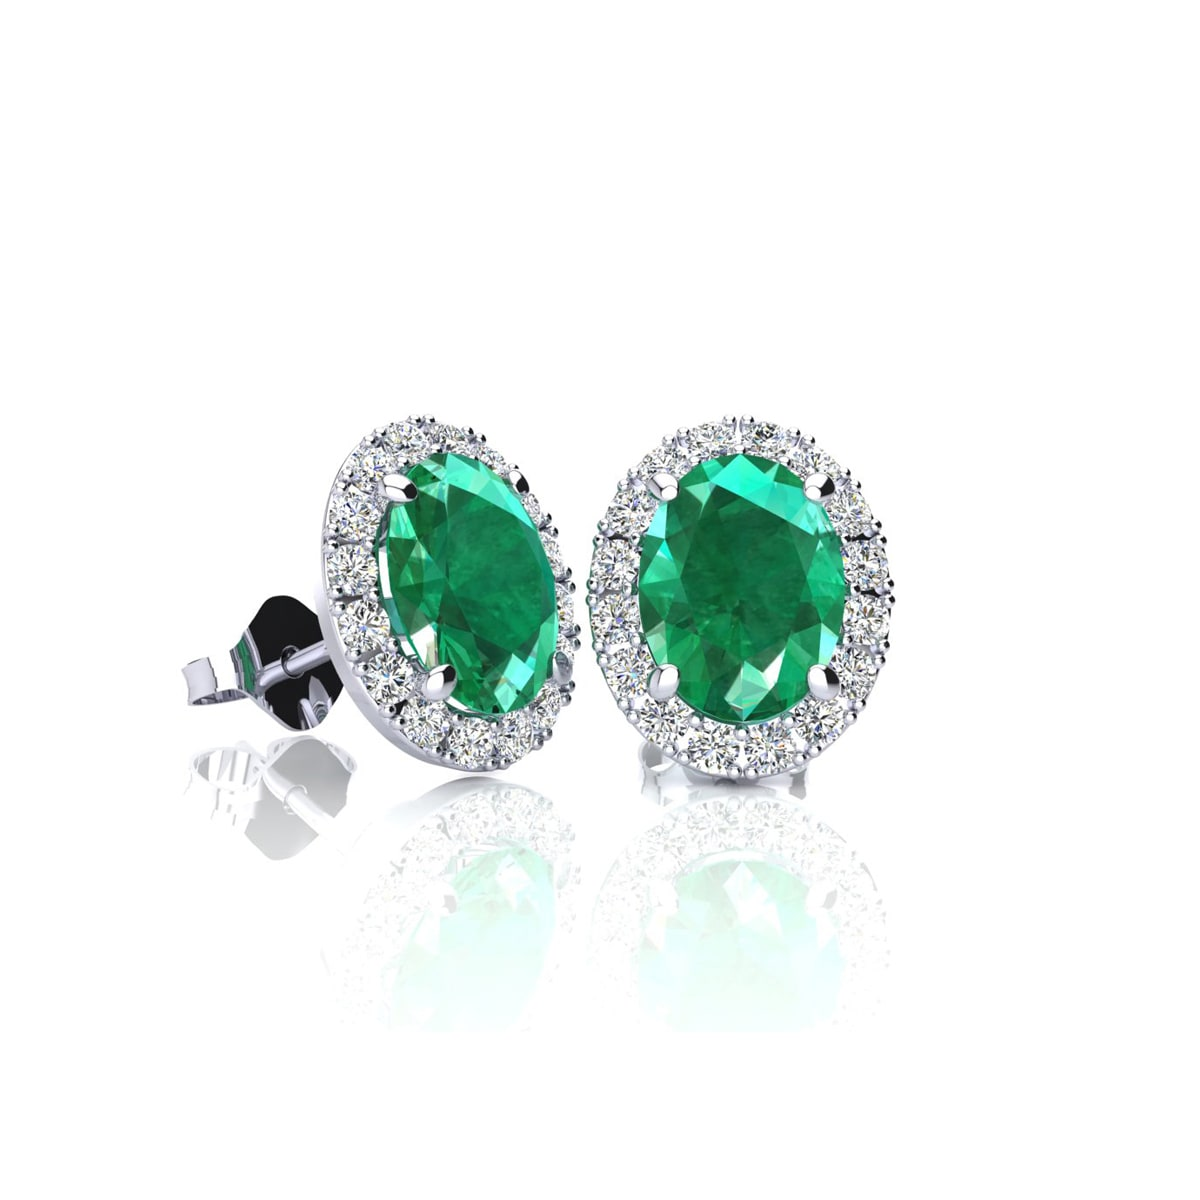 4 Carat Oval Shape Emerald And Halo Diamond Stud Earrings In 14 Karat  White Gold Item Number: Jwl 19911